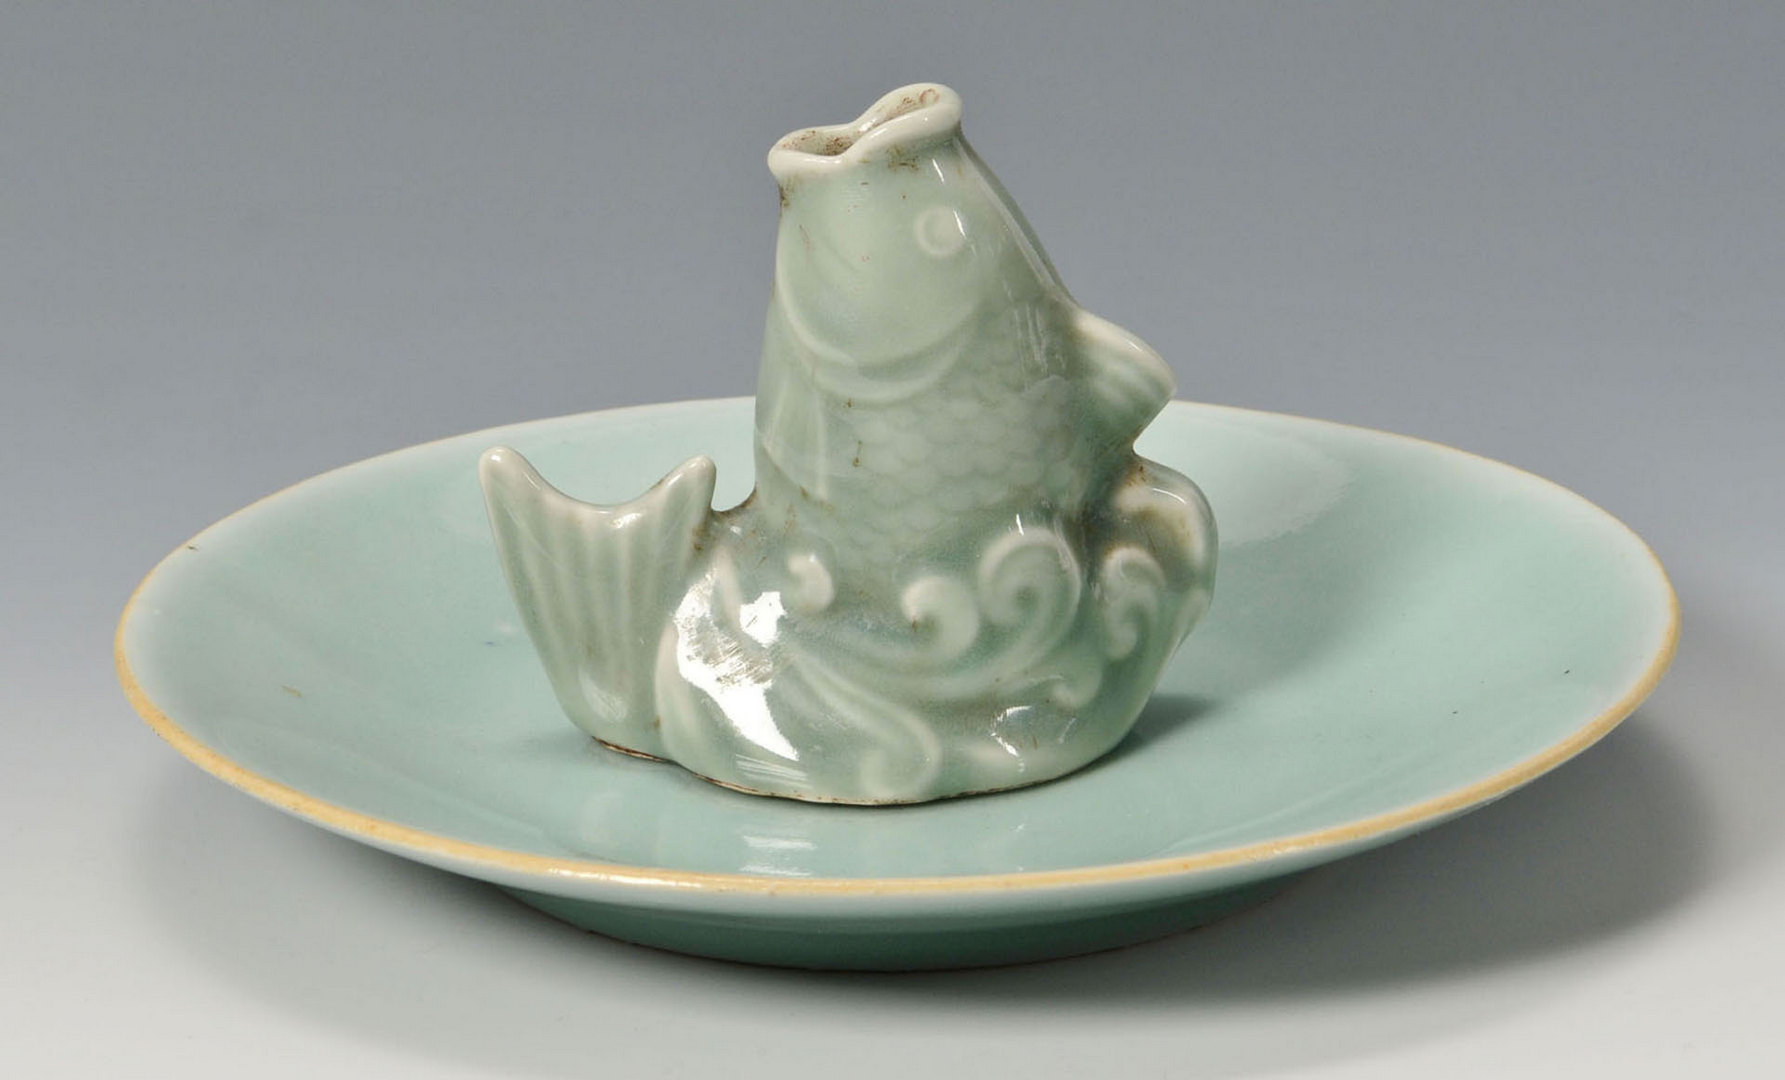 Lot 3088299: Group of Chinese Ceramics, 18th-early 20th c.